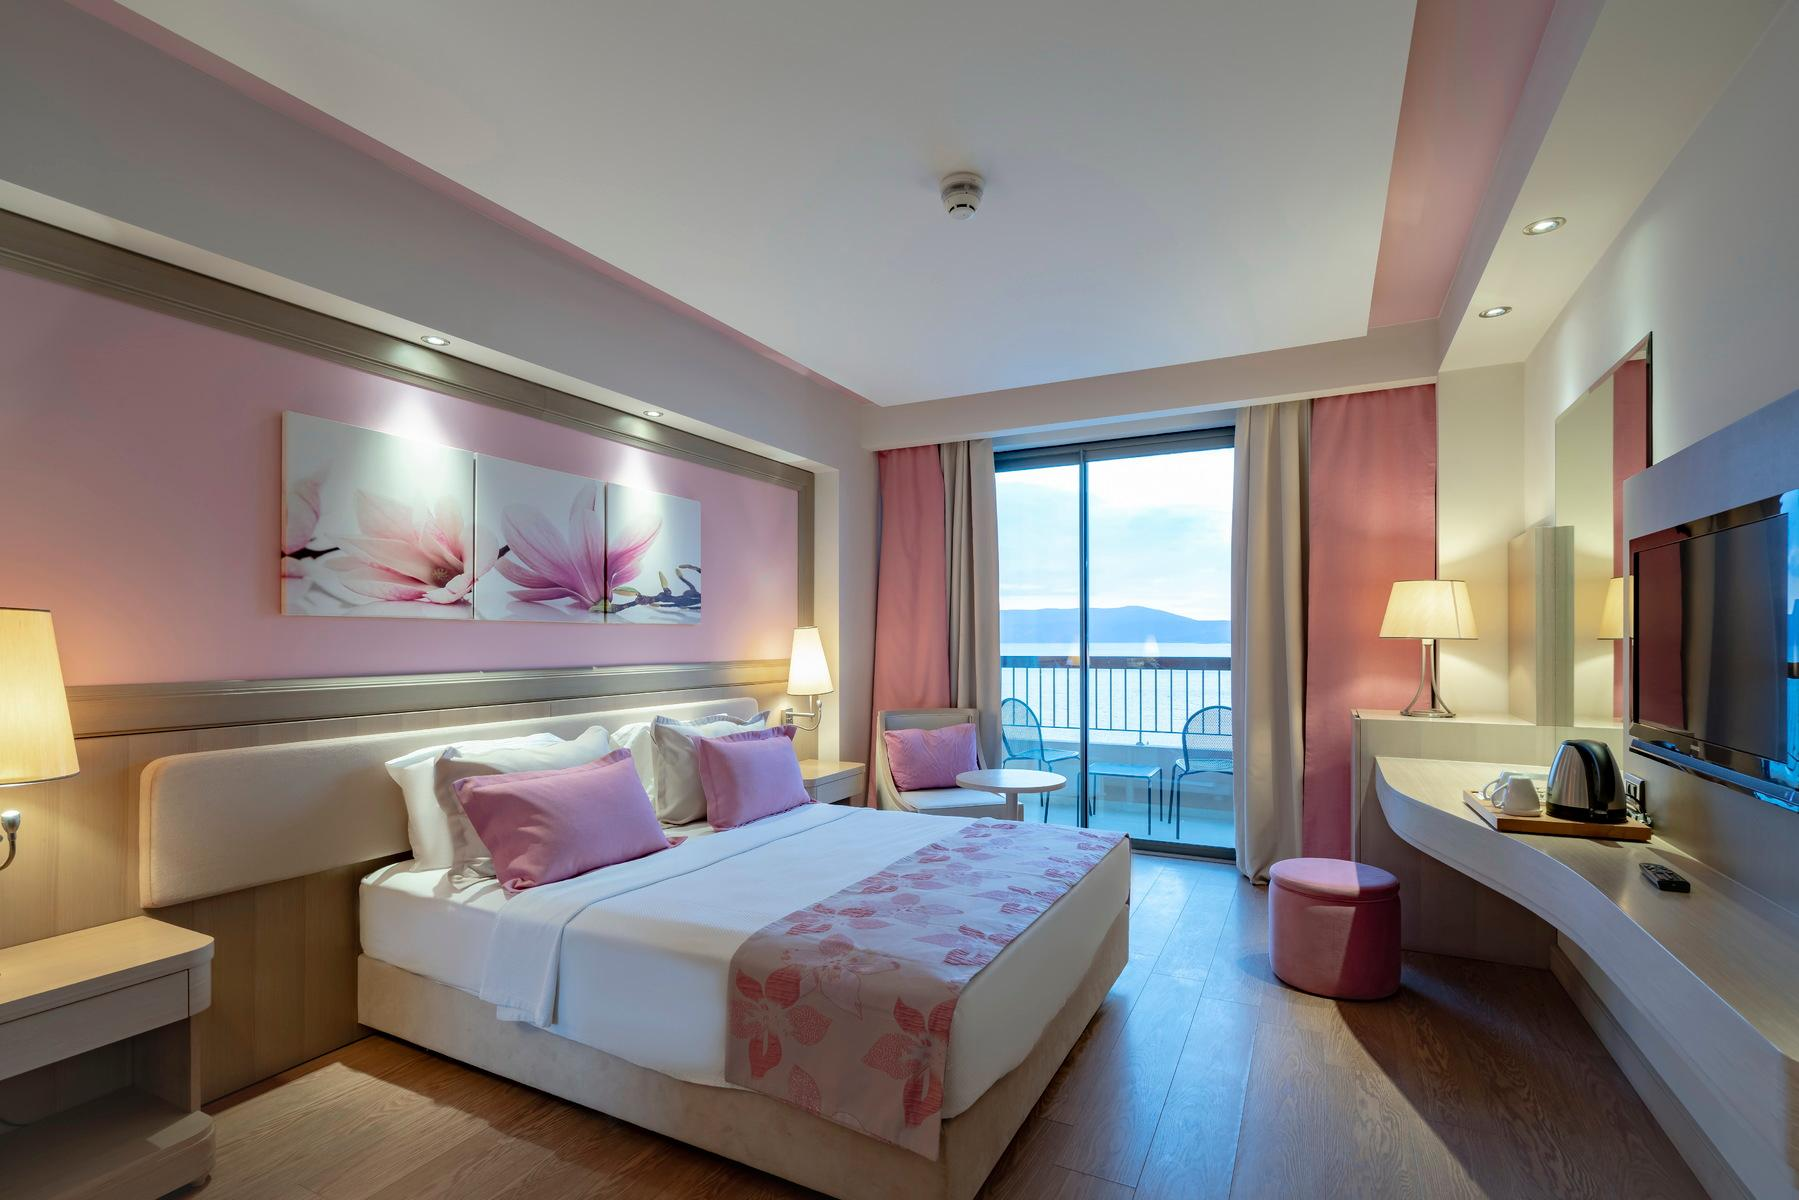 Euphoria Aegean Resort And Spa in Izmir, Aegean Coast, Turkey